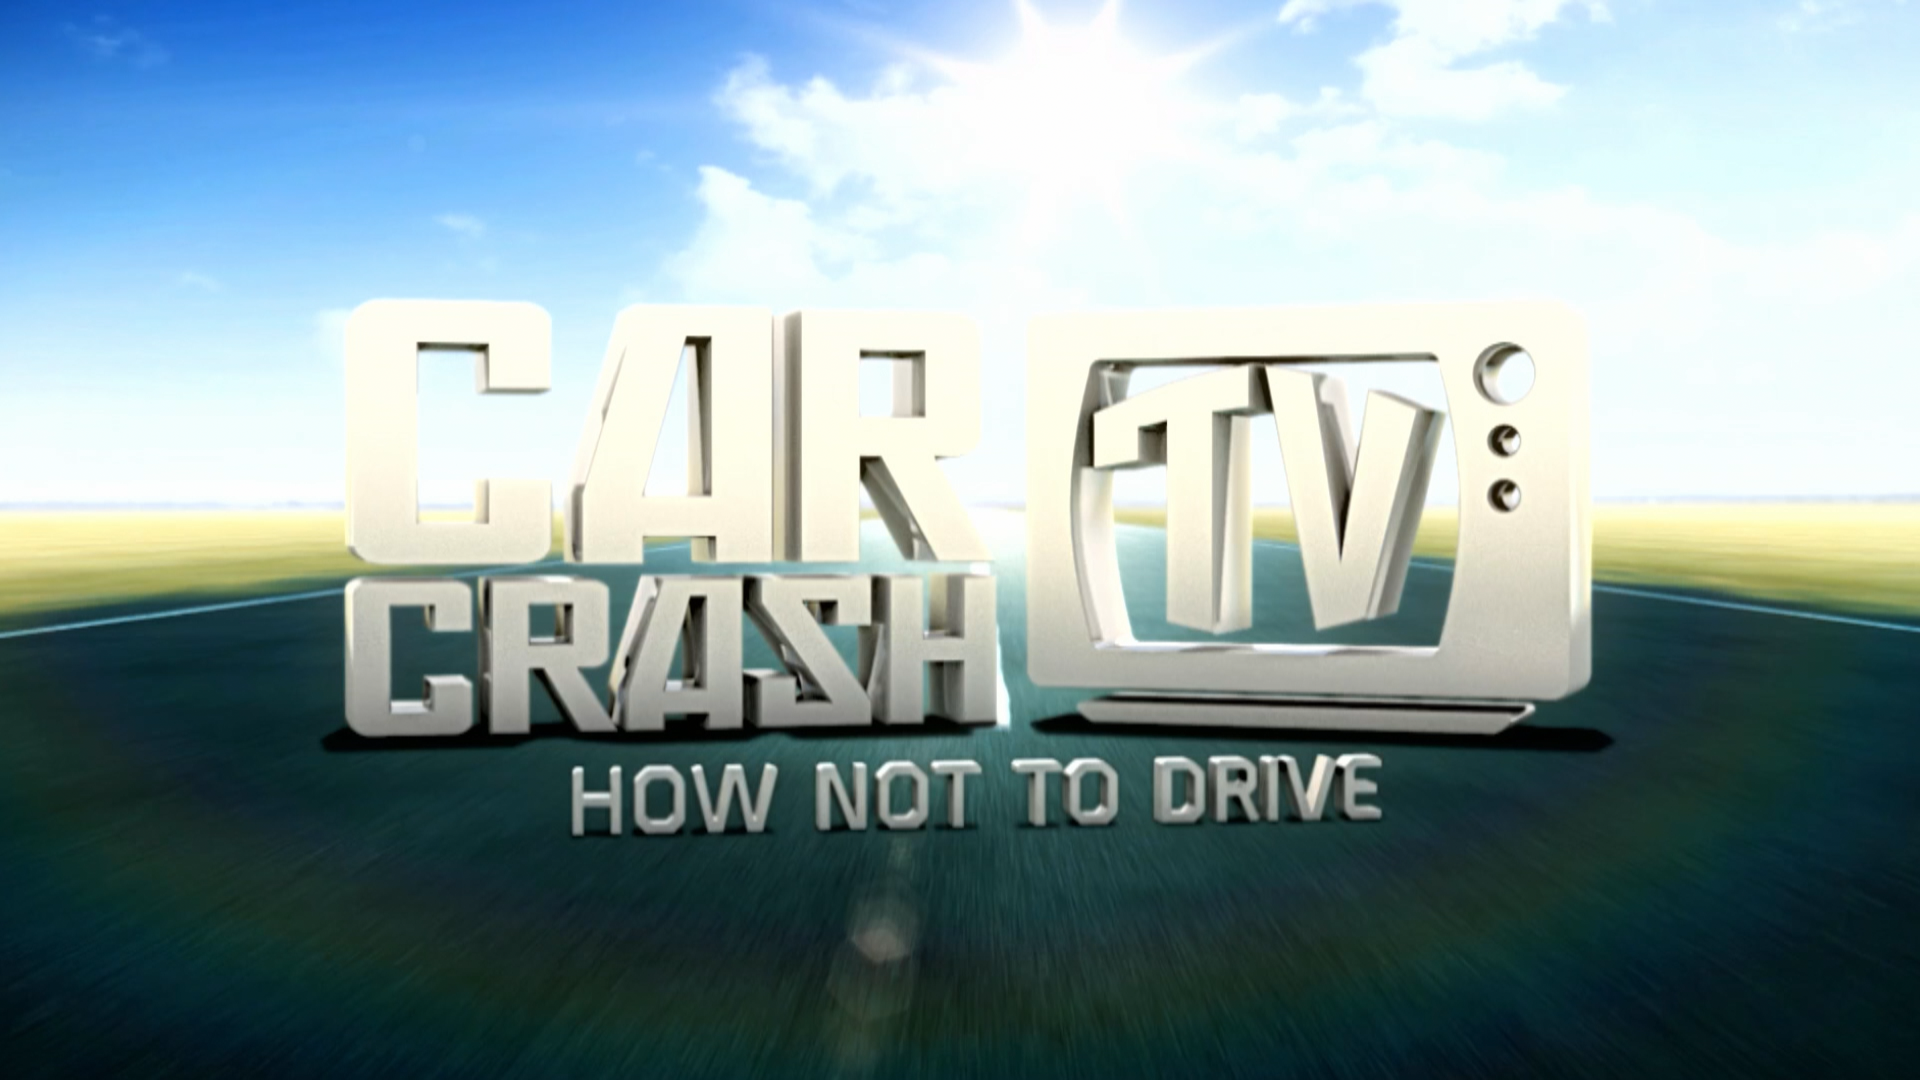 Car Crash TV Series 3 title card